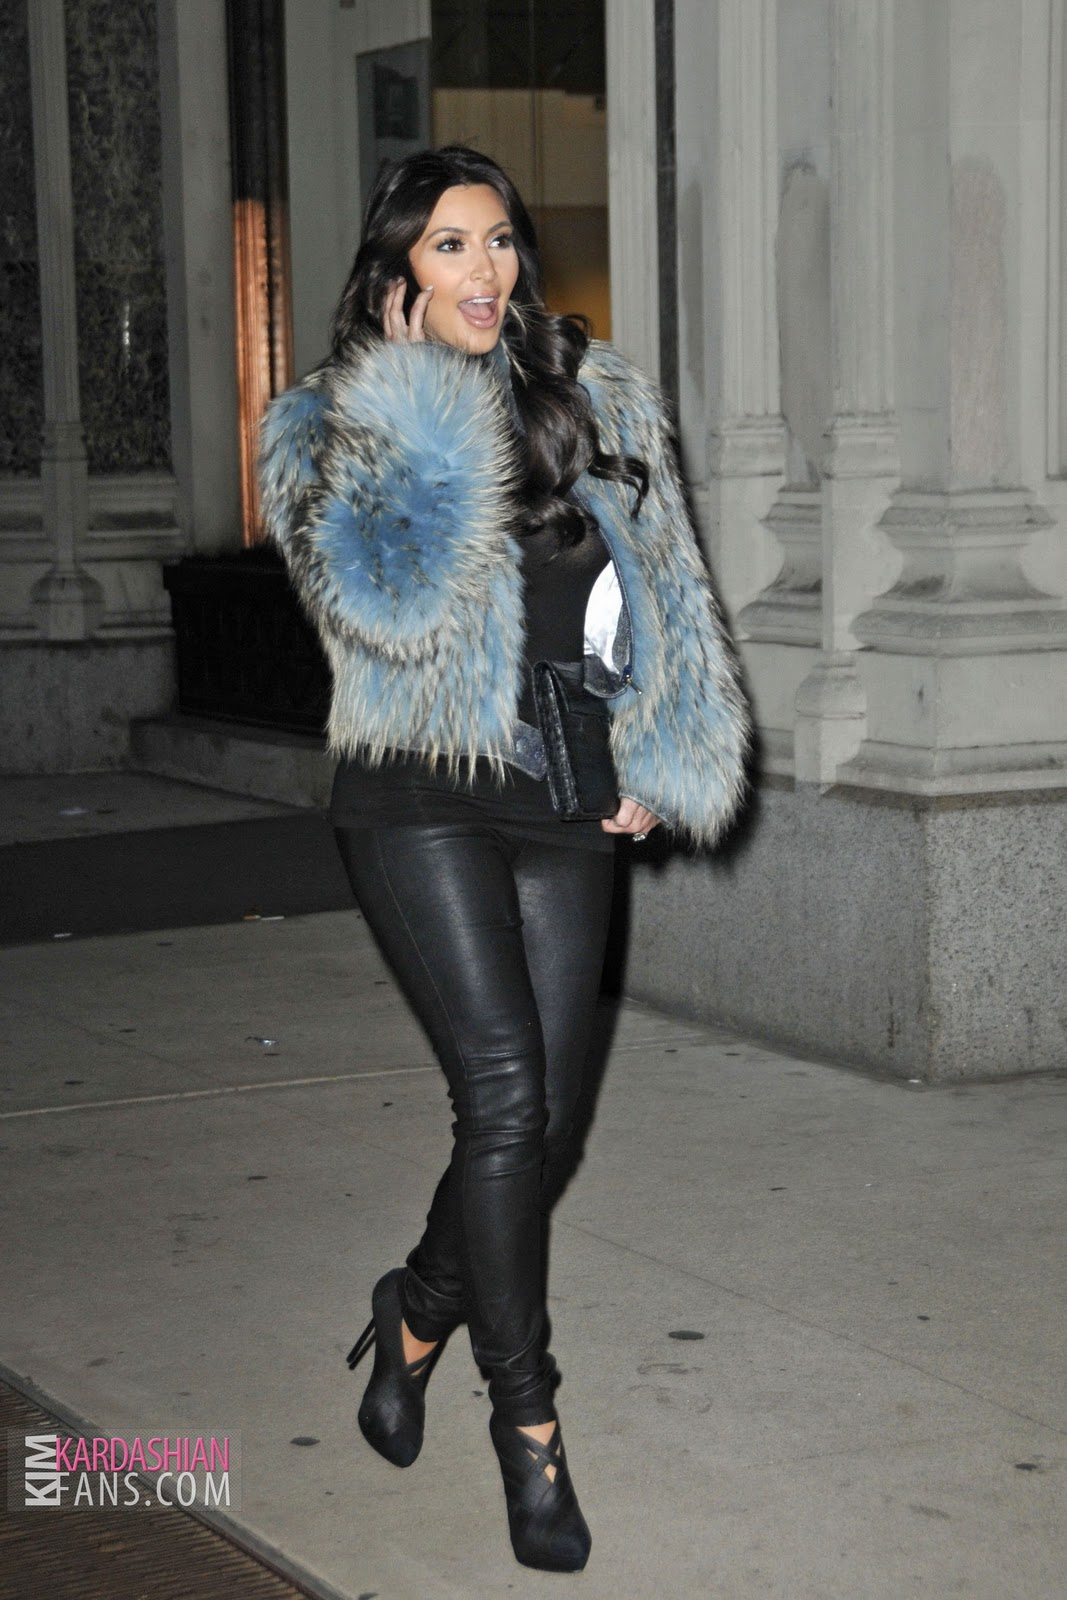 Kim kardashian style new york city new pictures